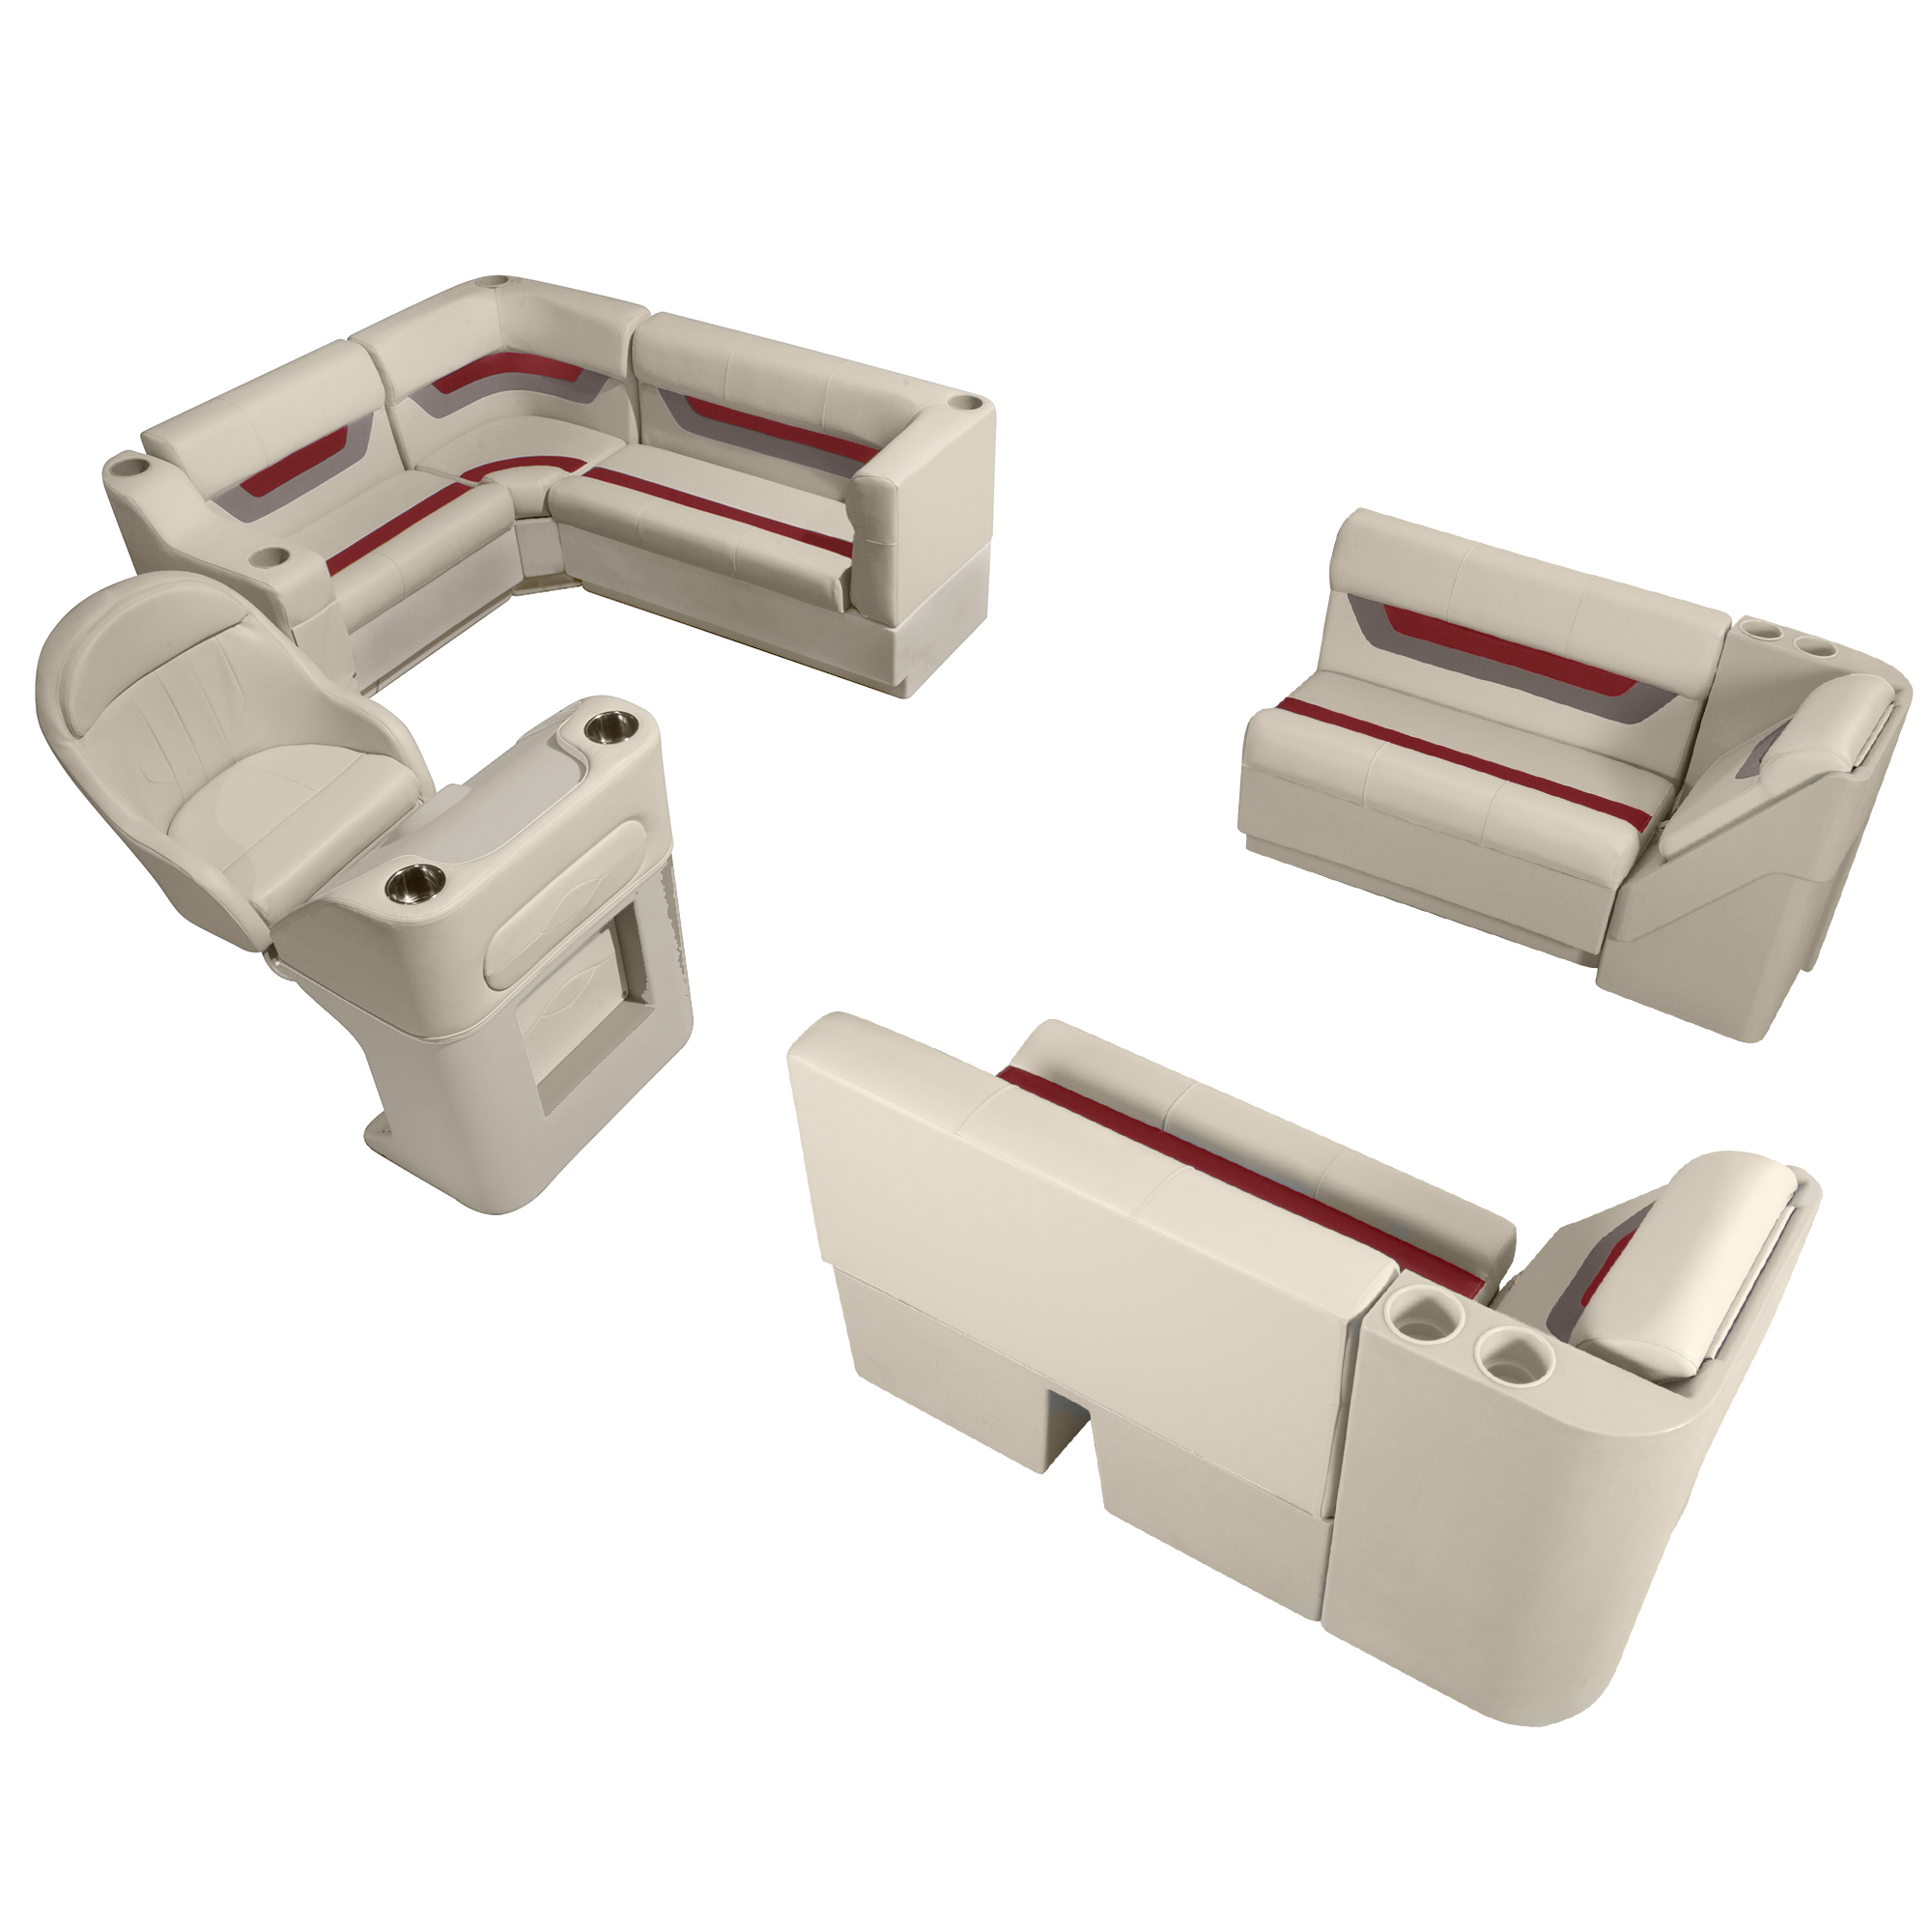 Toonmate Designer Pontoon Furniture Complete Boat Package w/Console & Helm Seat